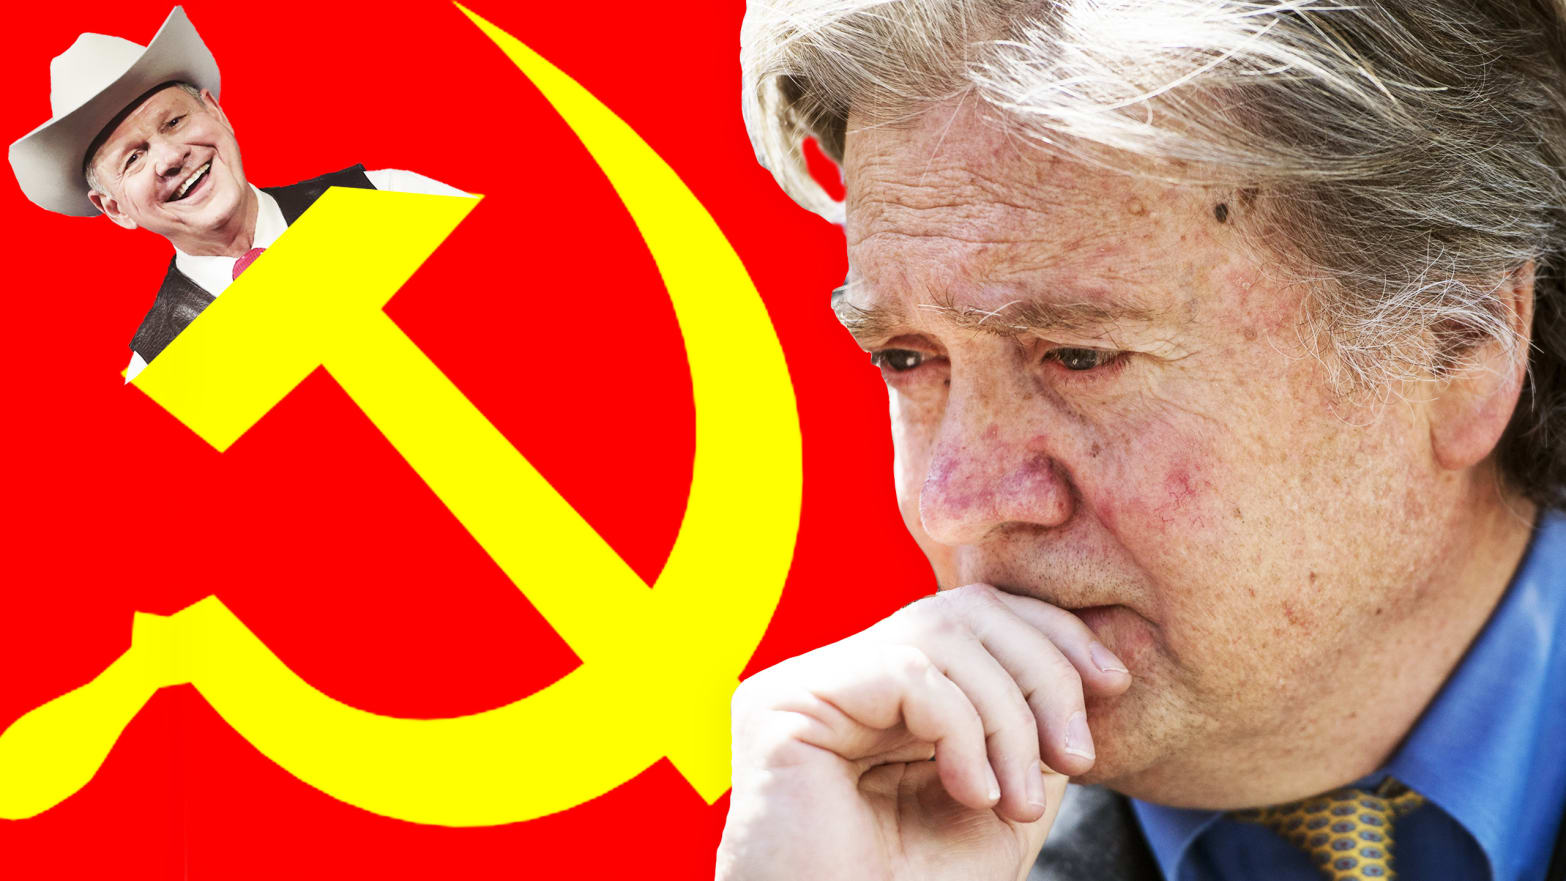 Steve Bannon Is Winning With the Old Communist Party Playbook